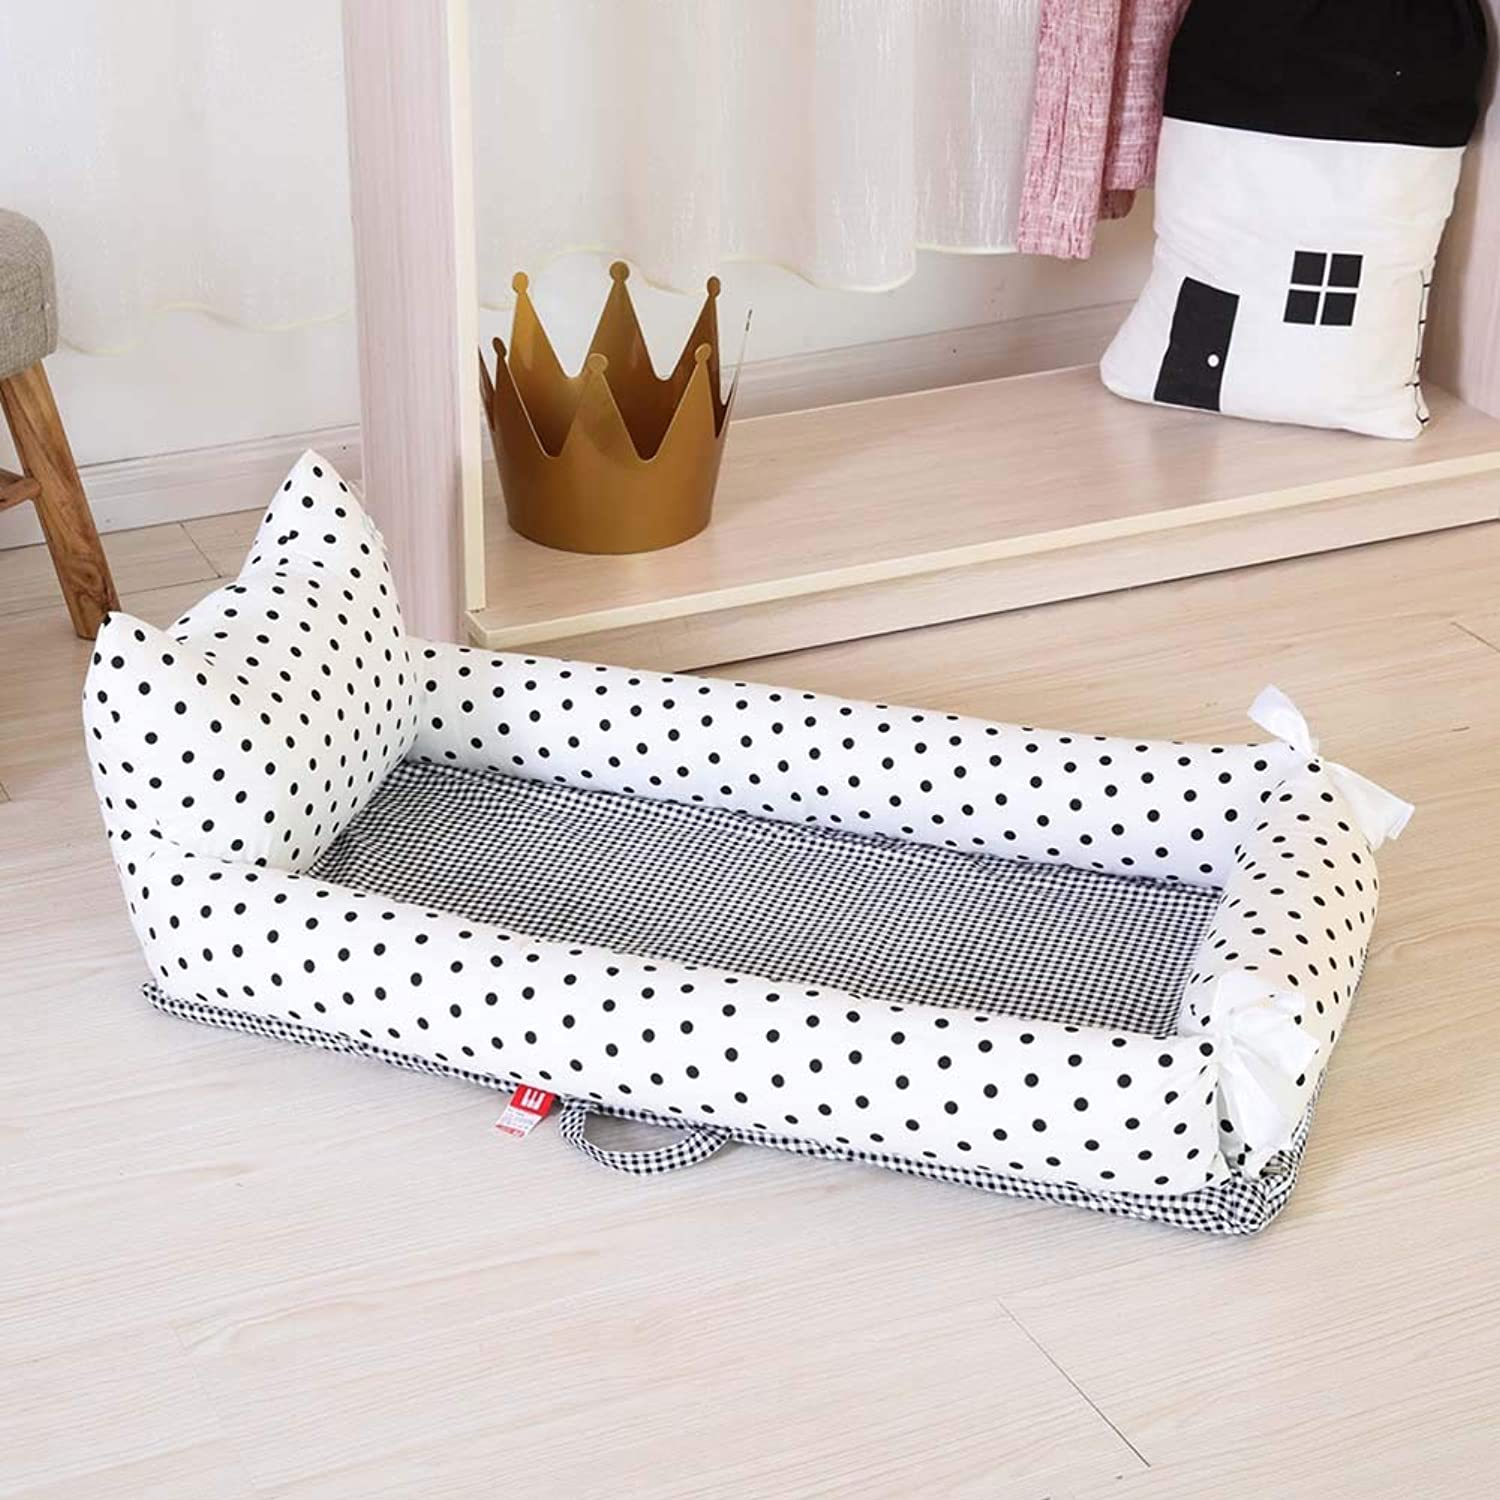 Newborn Portable Multi-Function Uterine Bed in Bed Fully Detachable Back-Bed Cot for 0-2 Years Old,A,Smallbed+Pillow